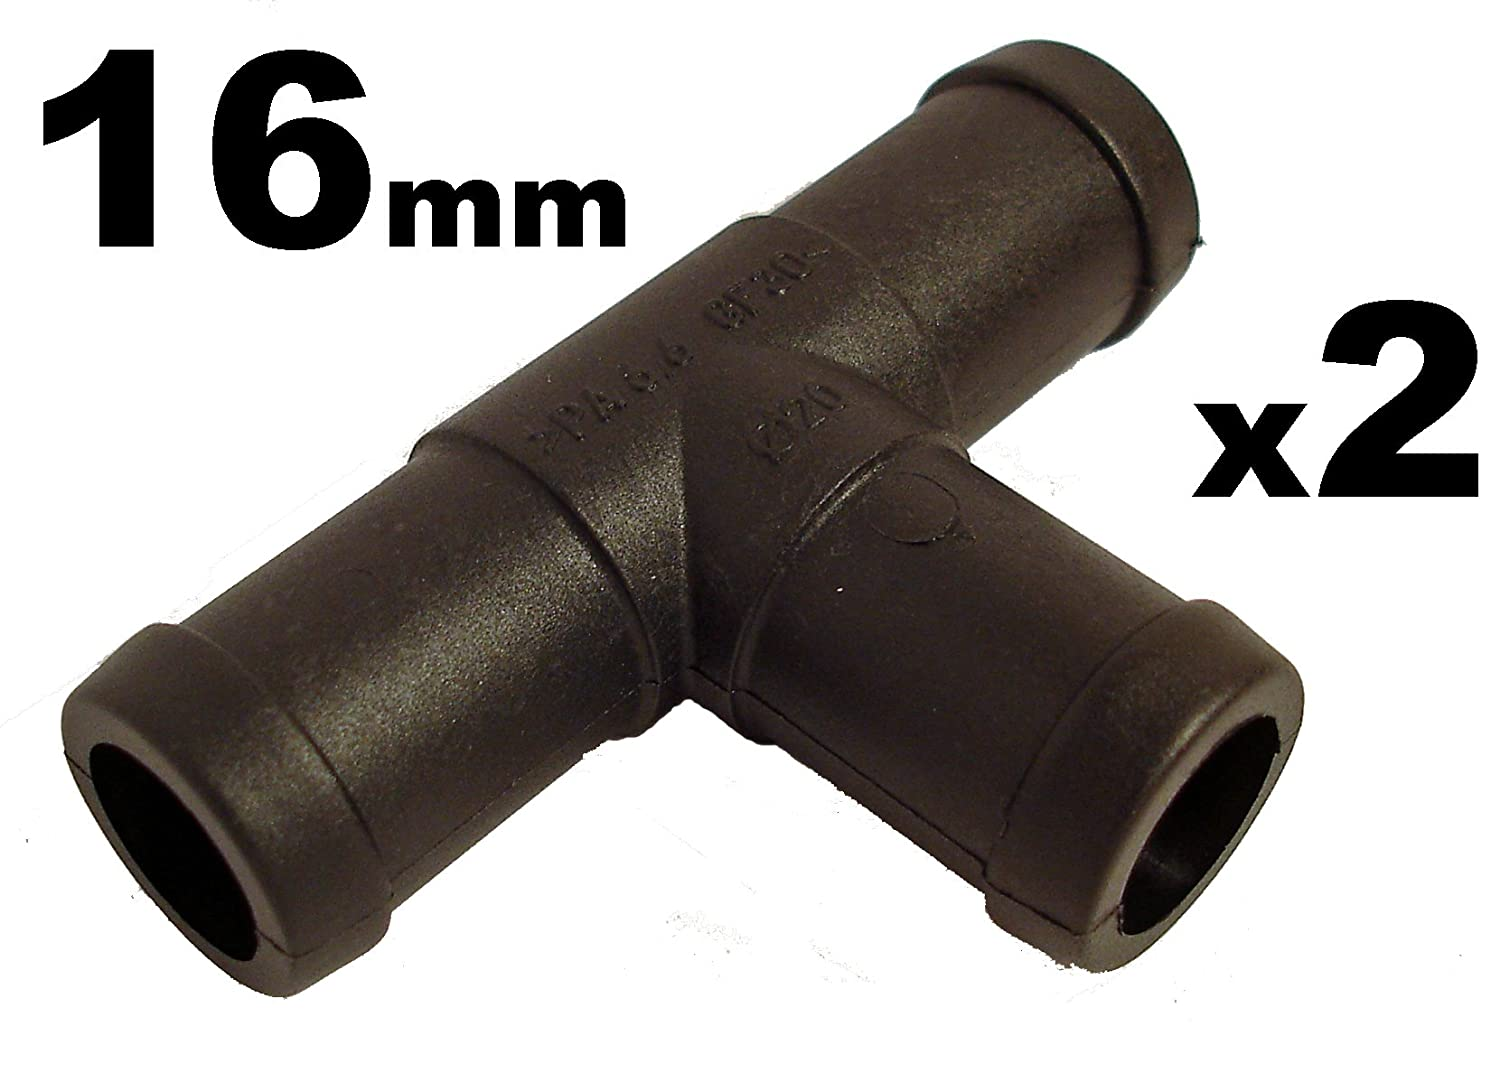 2 Hose Tube Pipe 3-way T-Piece Splitter Connector 16mm Tube Pipe Connector Joiner Air Fuel Water - FREE FIRST CLASS UK POSTAGE! Autoconsumables